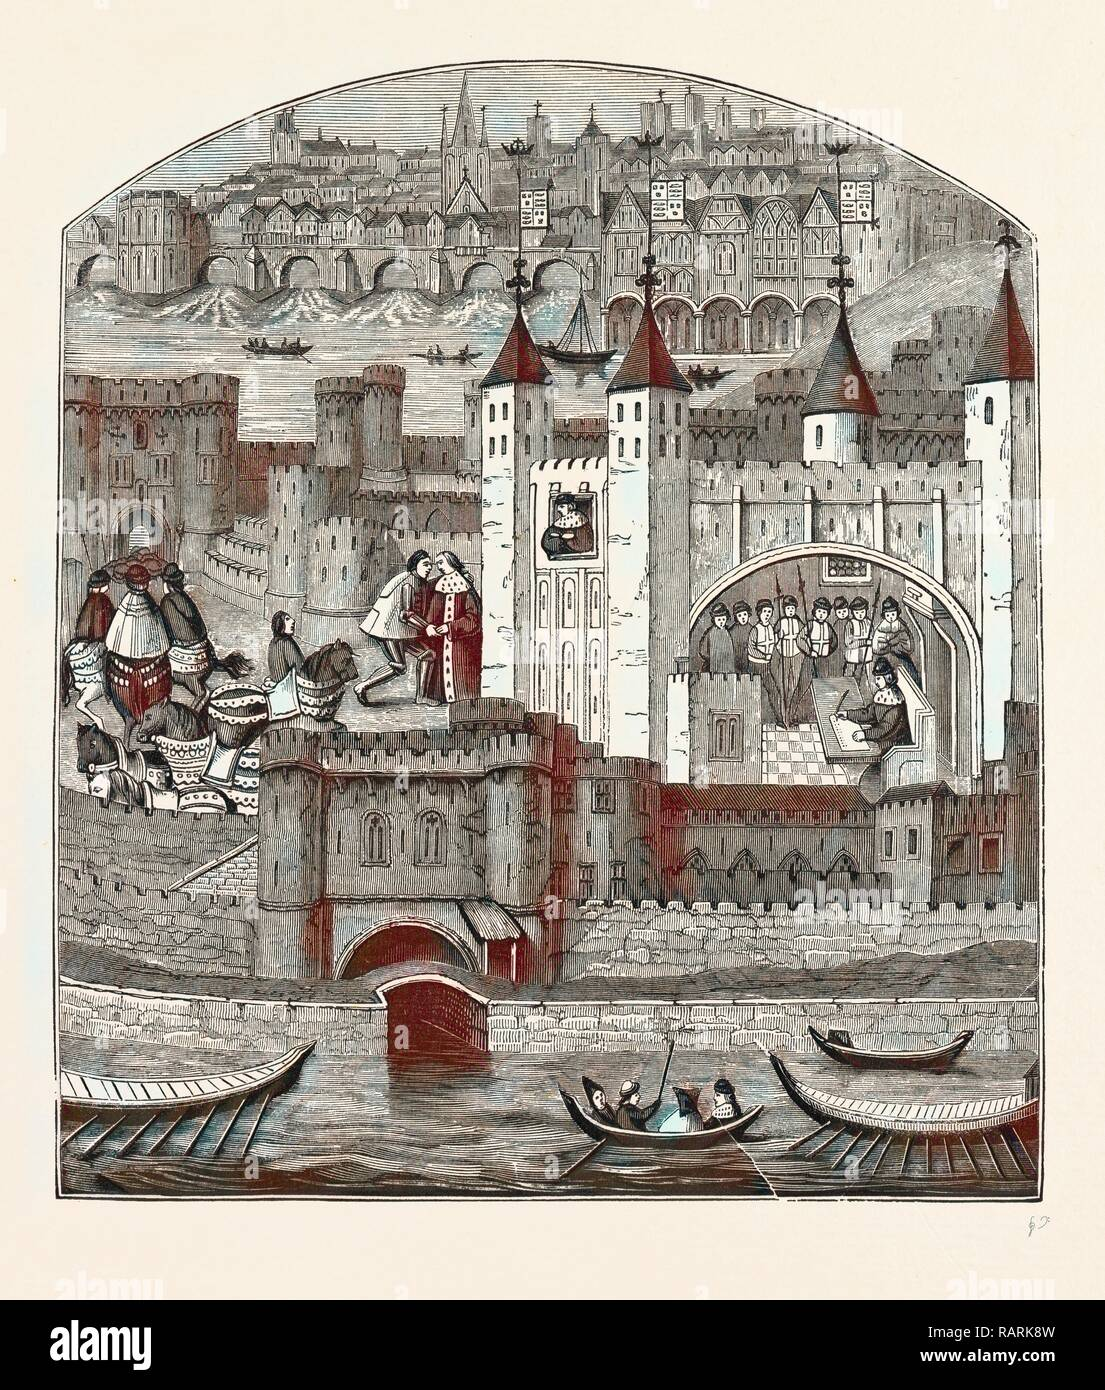 Tower Fifteenth Century, London, England, engraving 19th century, Britain, UK. Reimagined by Gibon. Classic art with reimagined - Stock Image